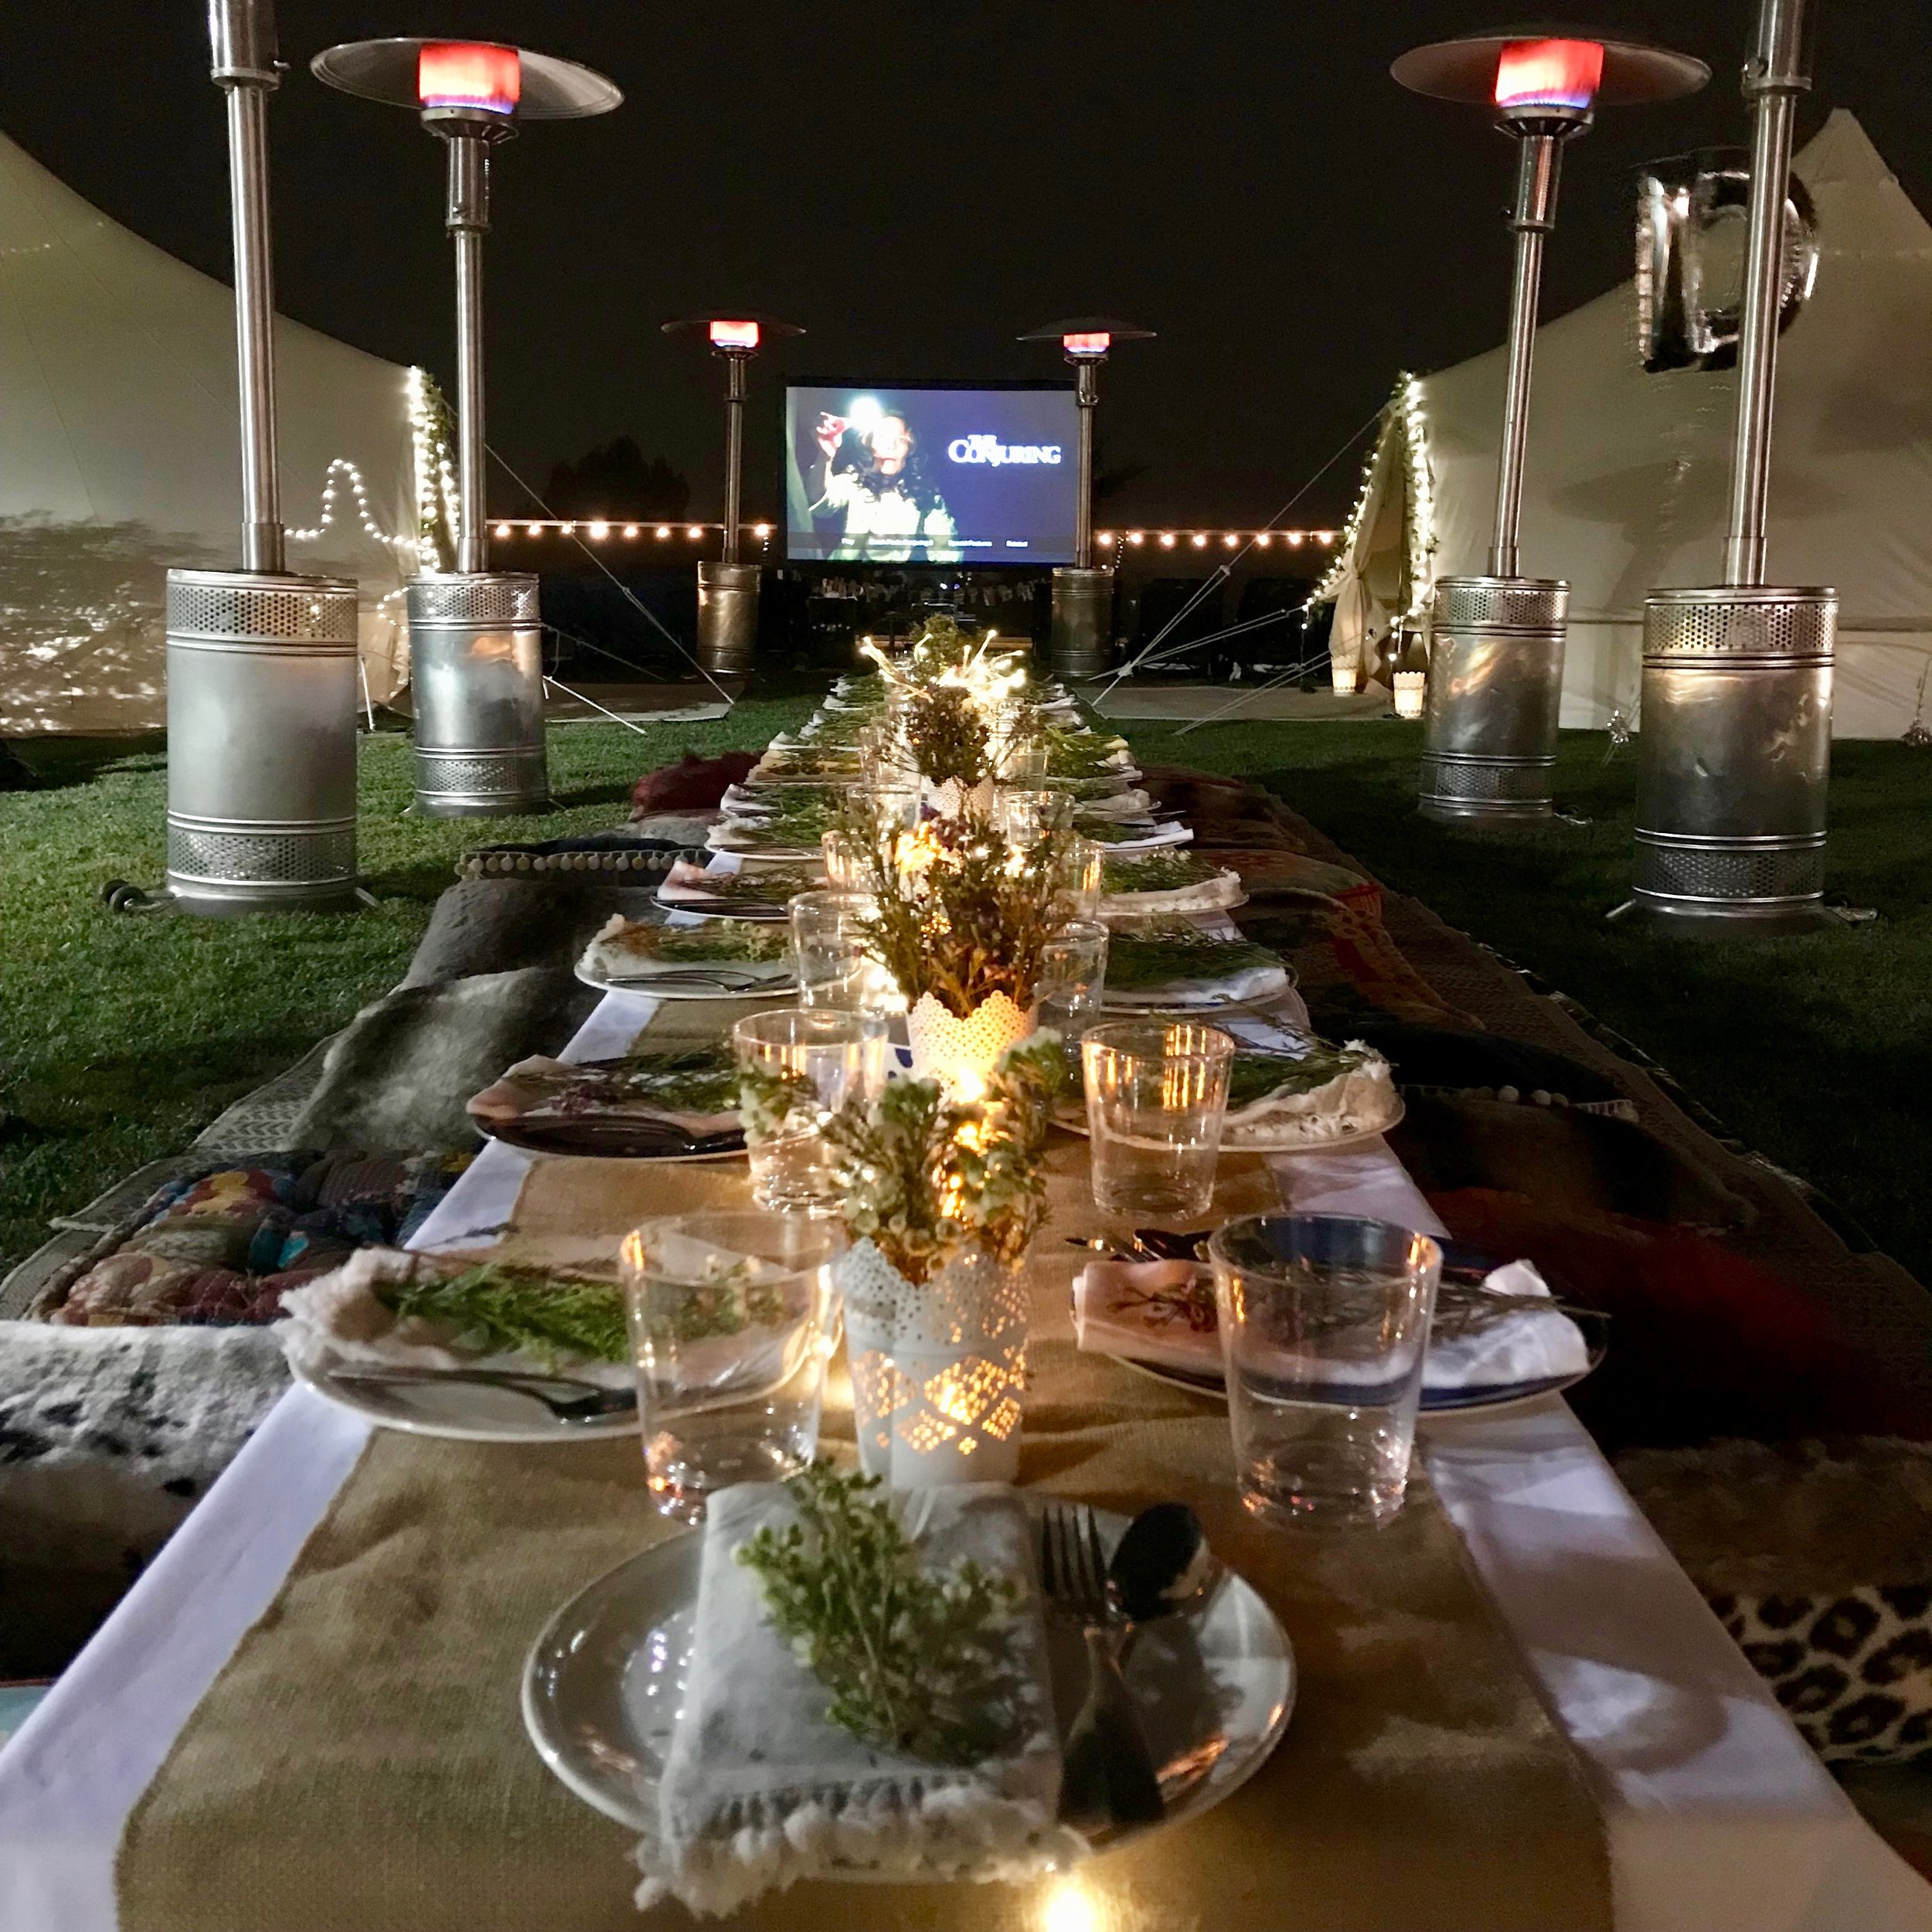 This is absolutely the best!!!The setting is stunning. - Daun D. Mother of 5 on our Dining, Outdoor Movie & GlampOut experience